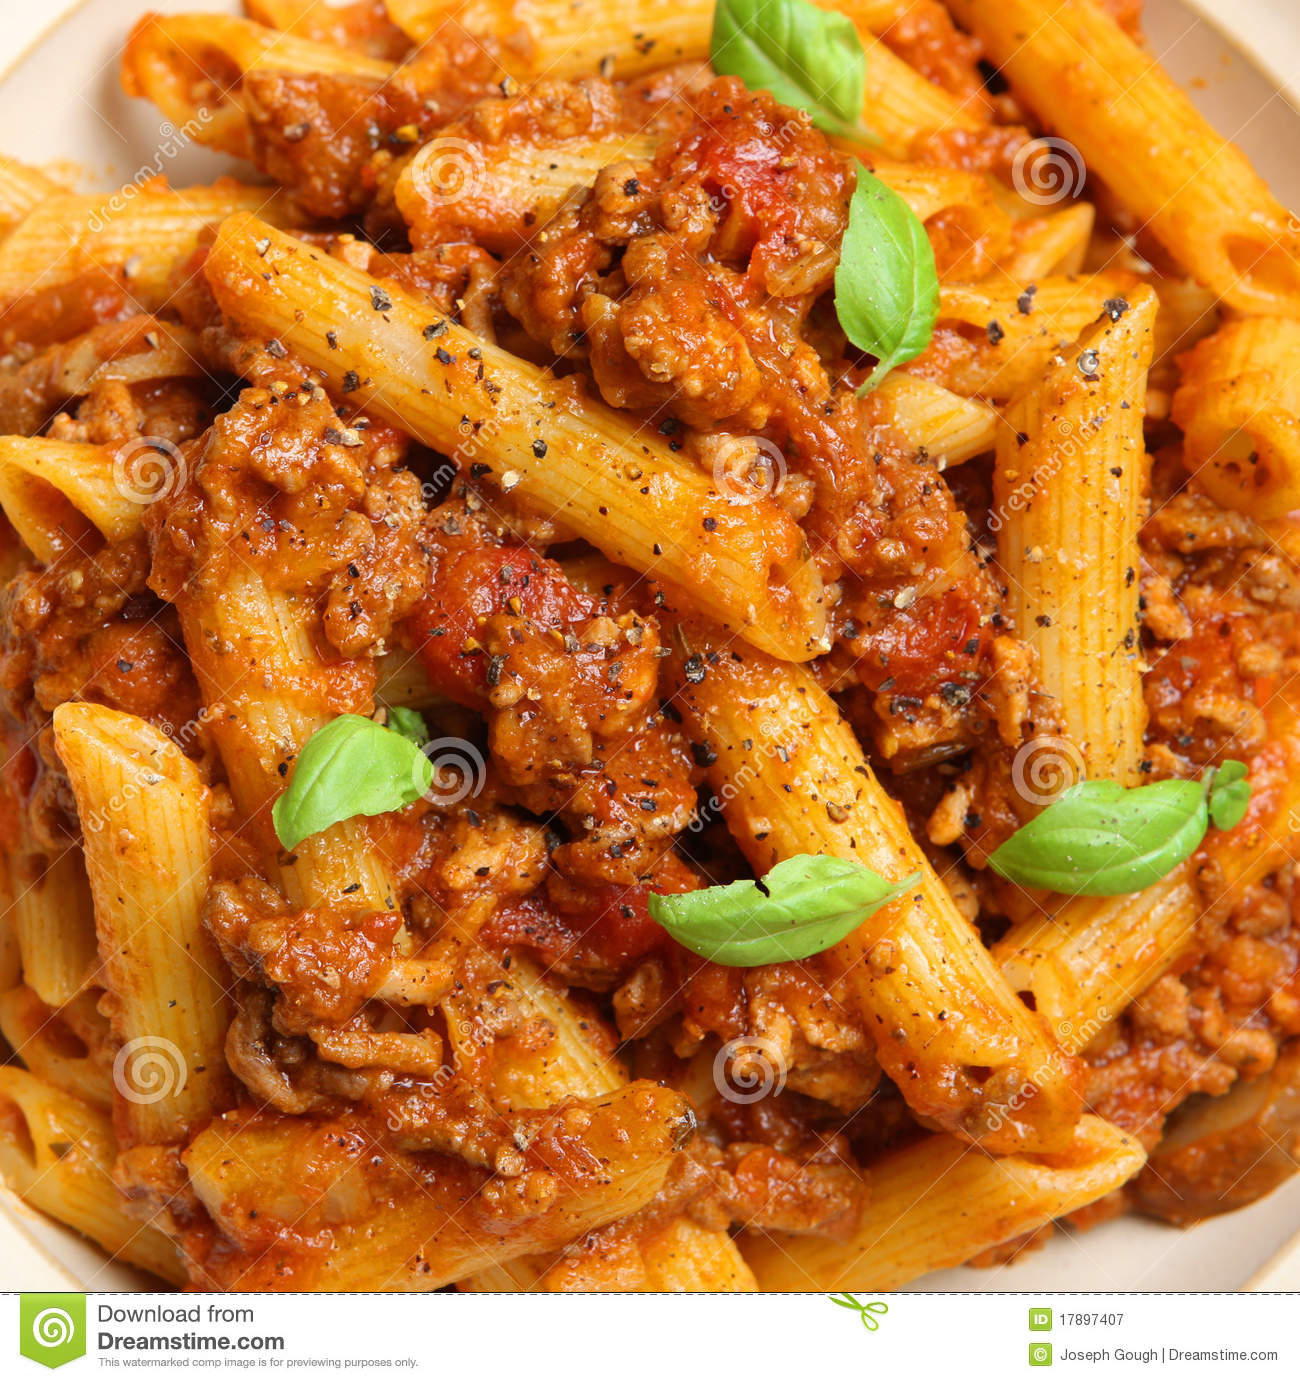 Rigatoni Pasta With Bolognese Sauce Royalty Free Stock Photography ...